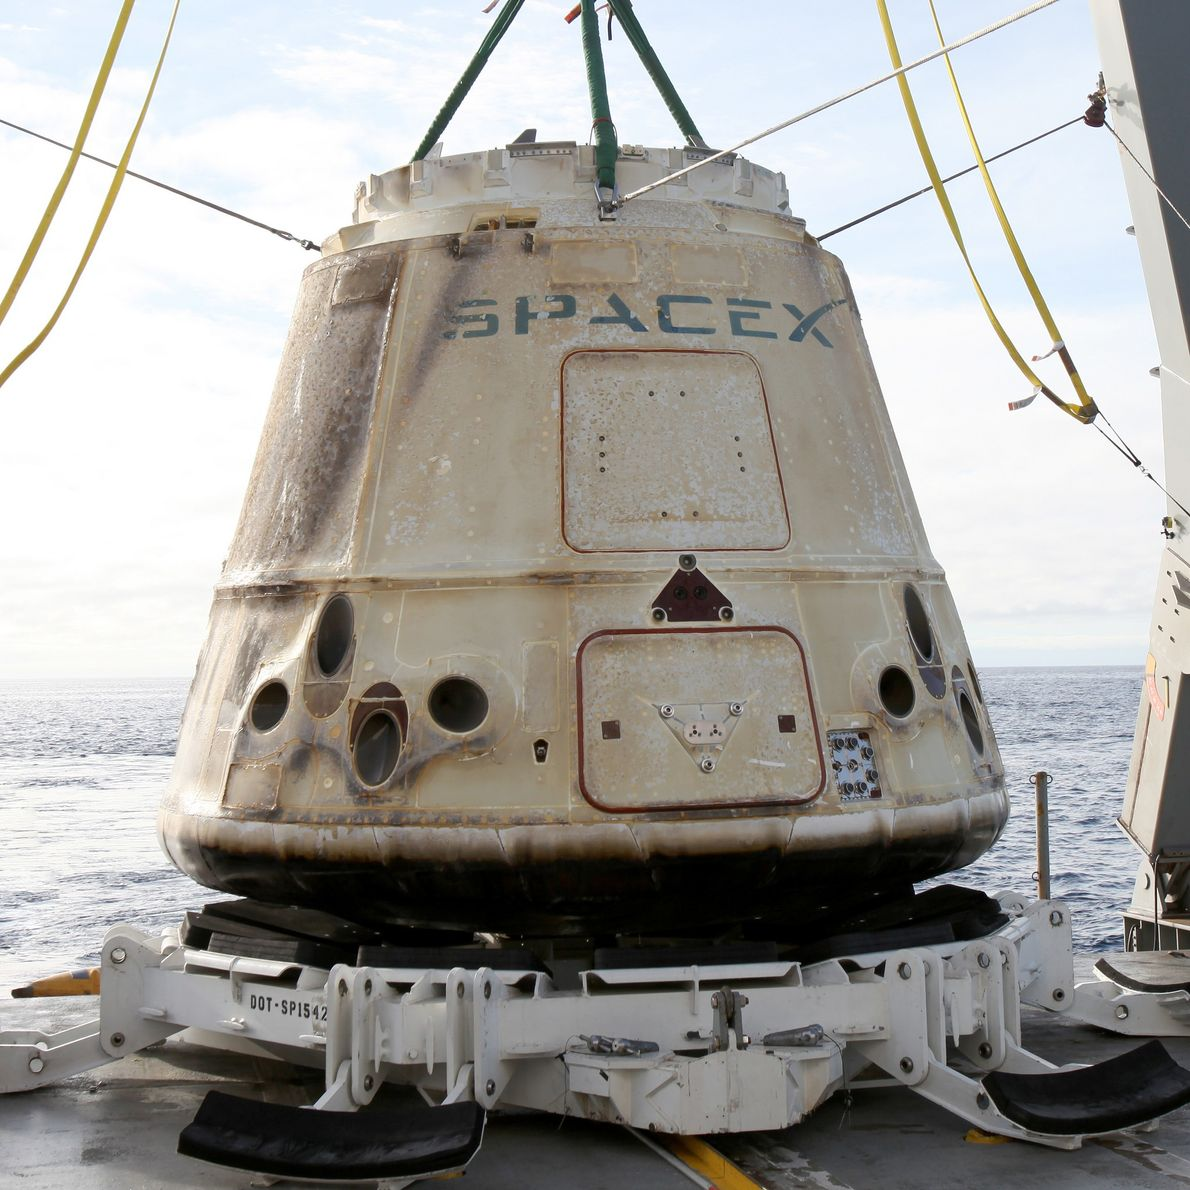 A Dragon cargo craft is recovered from the Pacific in 2017.